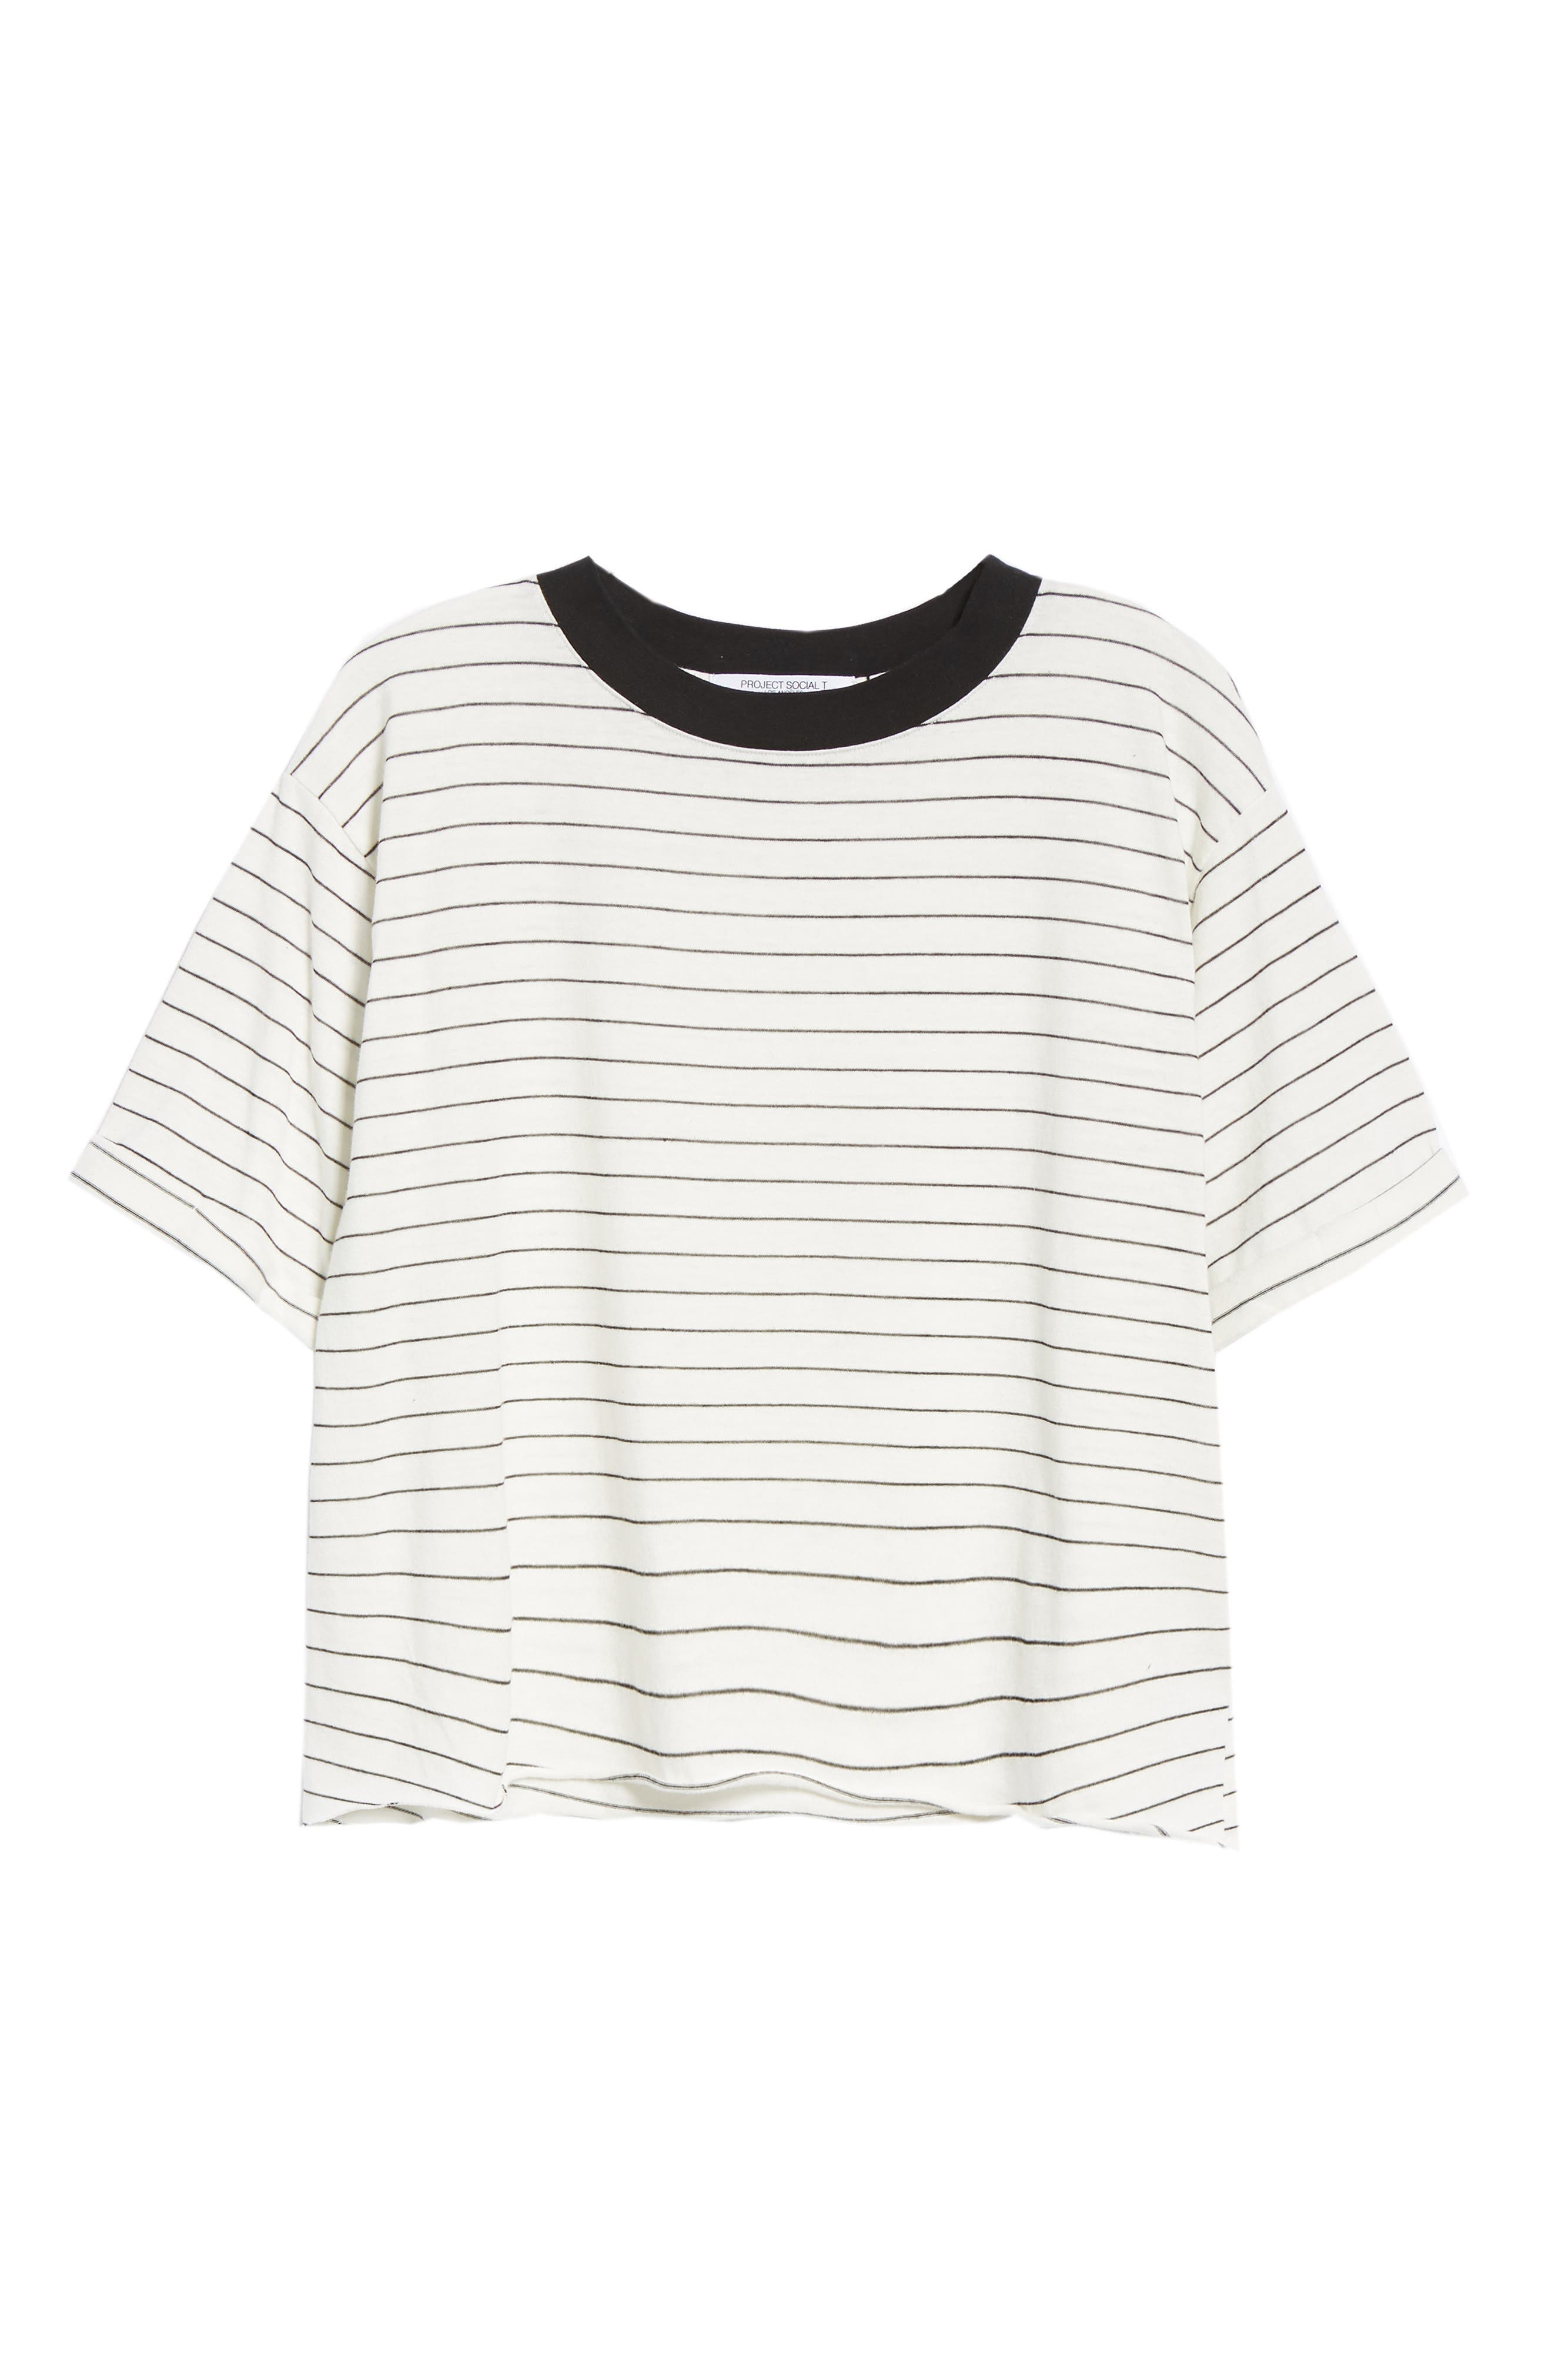 Freddy Crop Ringer Tee,                             Alternate thumbnail 6, color,                             IVORY/ BLACK